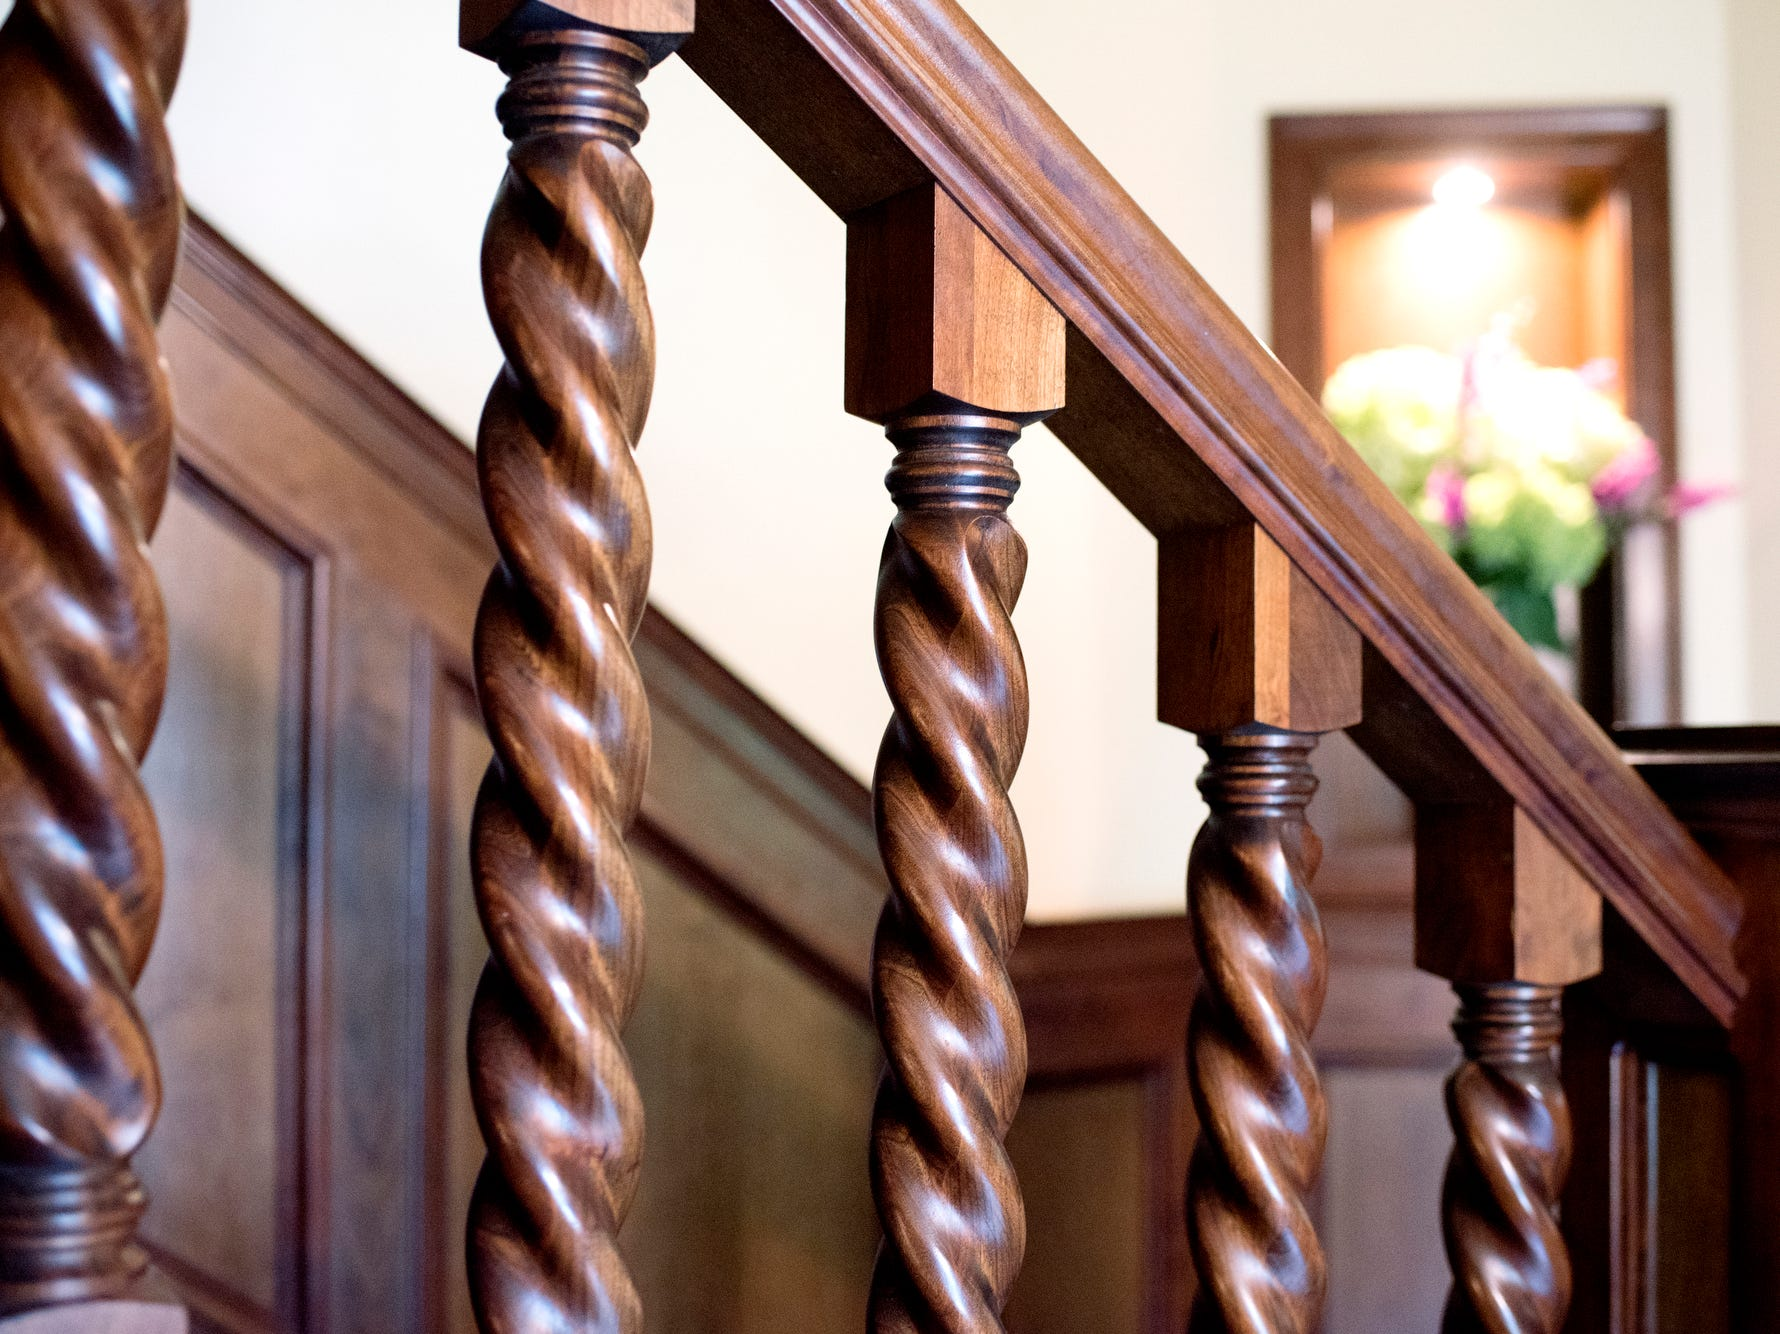 Decorative wooden railings line the stairs to the upper level inside Deb Atkinson's historically Colonial home photographed on Tuesday, July 24, 2018, in East Lansing. Built in 1930, the Colonial-style home surrounded by greenery and beautifully renovated is now on the market.